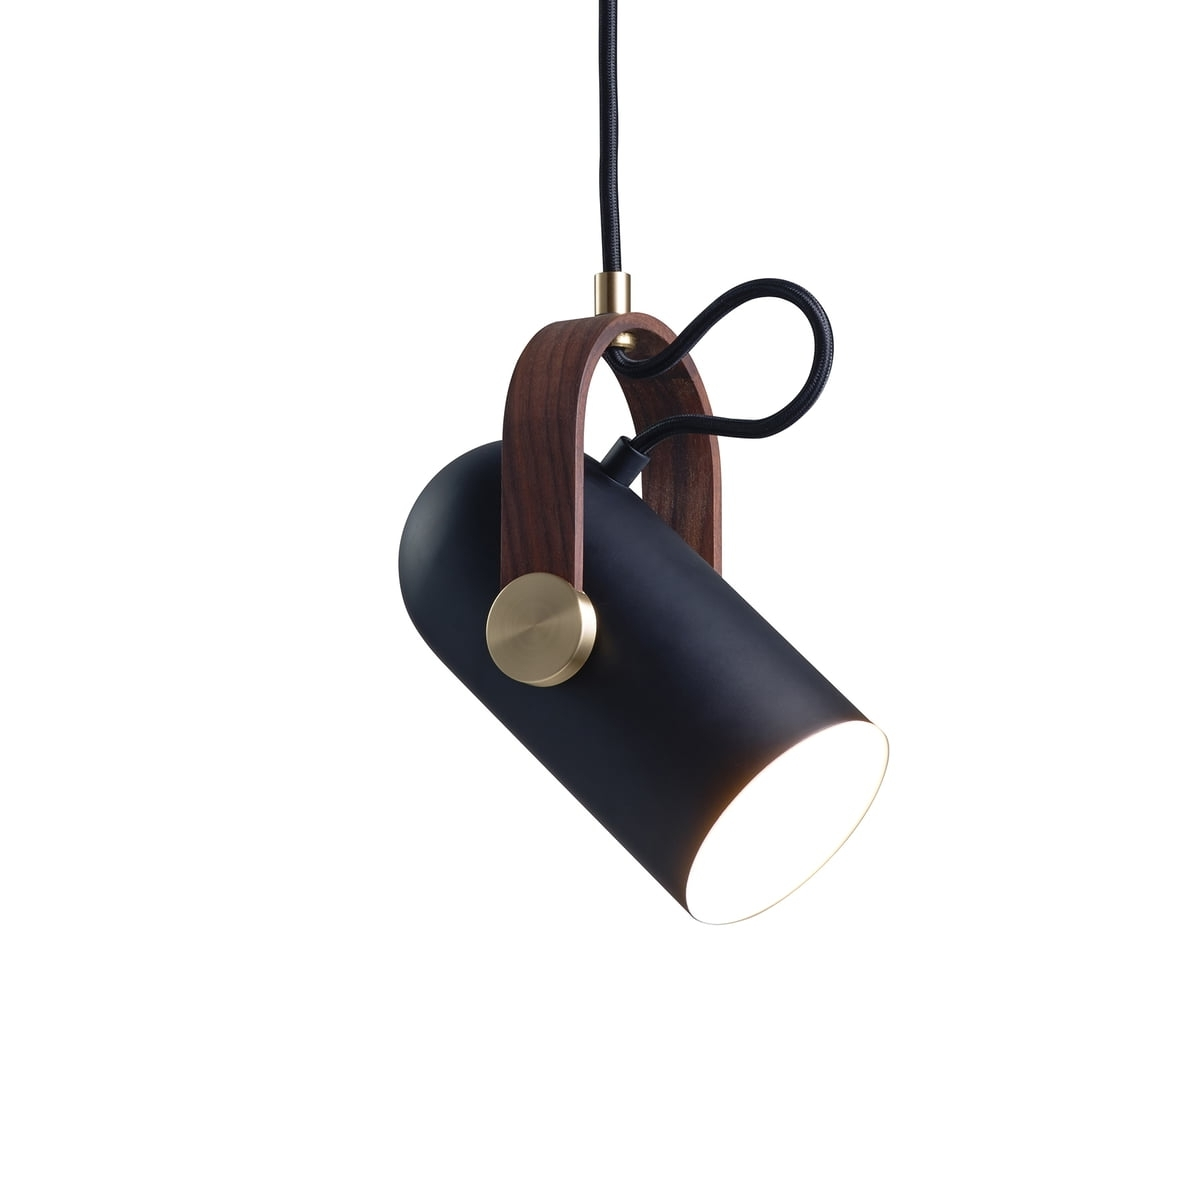 Outdoor Ceiling Lights At Rona Within Recent Carronade Pendant Lample Klint In Our Shop (View 5 of 20)